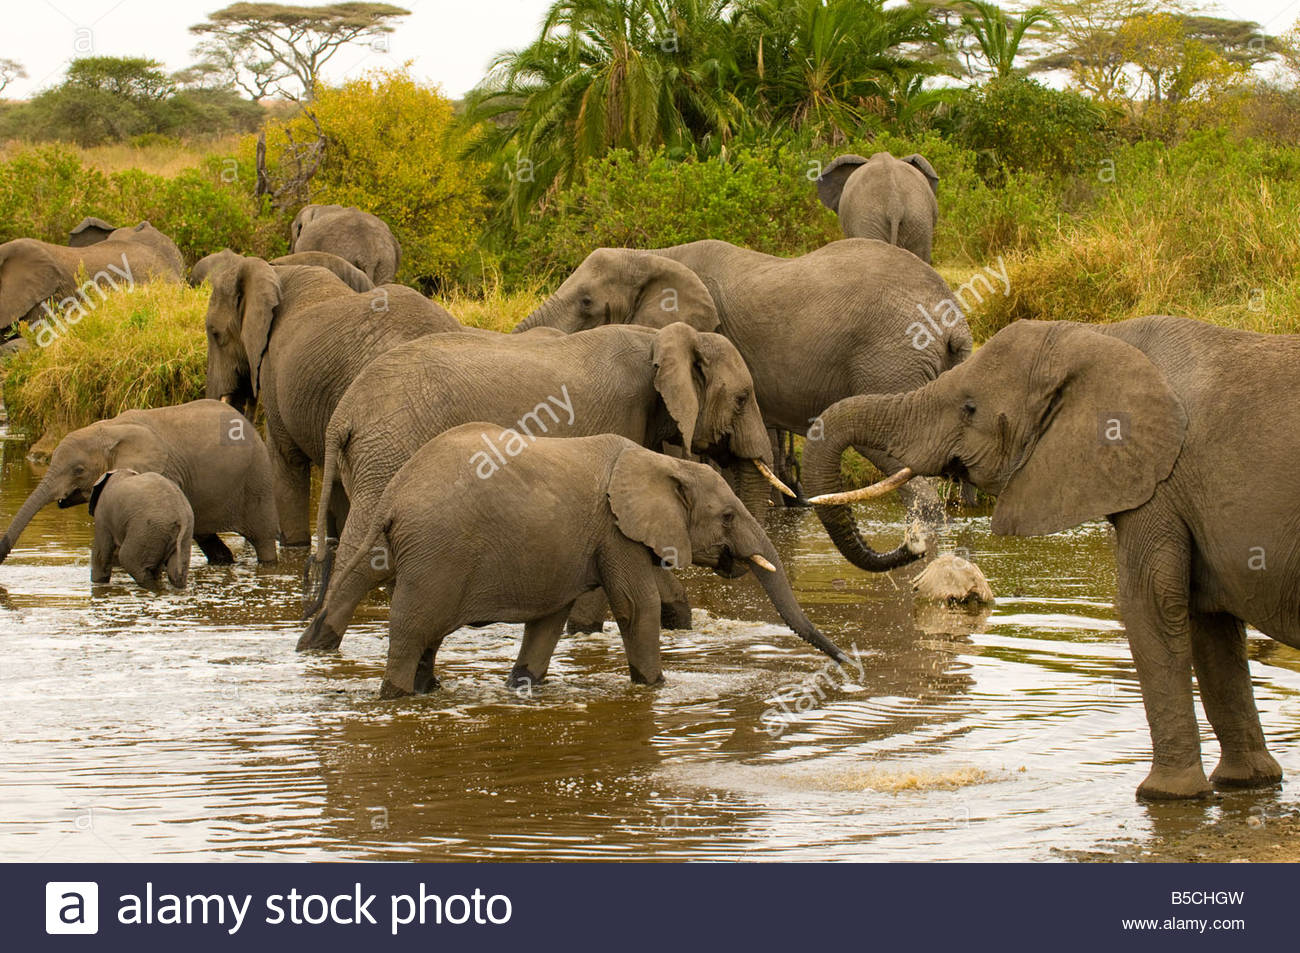 A herd of African Elephants at a watering hole Serengeti National Park Tanzania - Stock Image